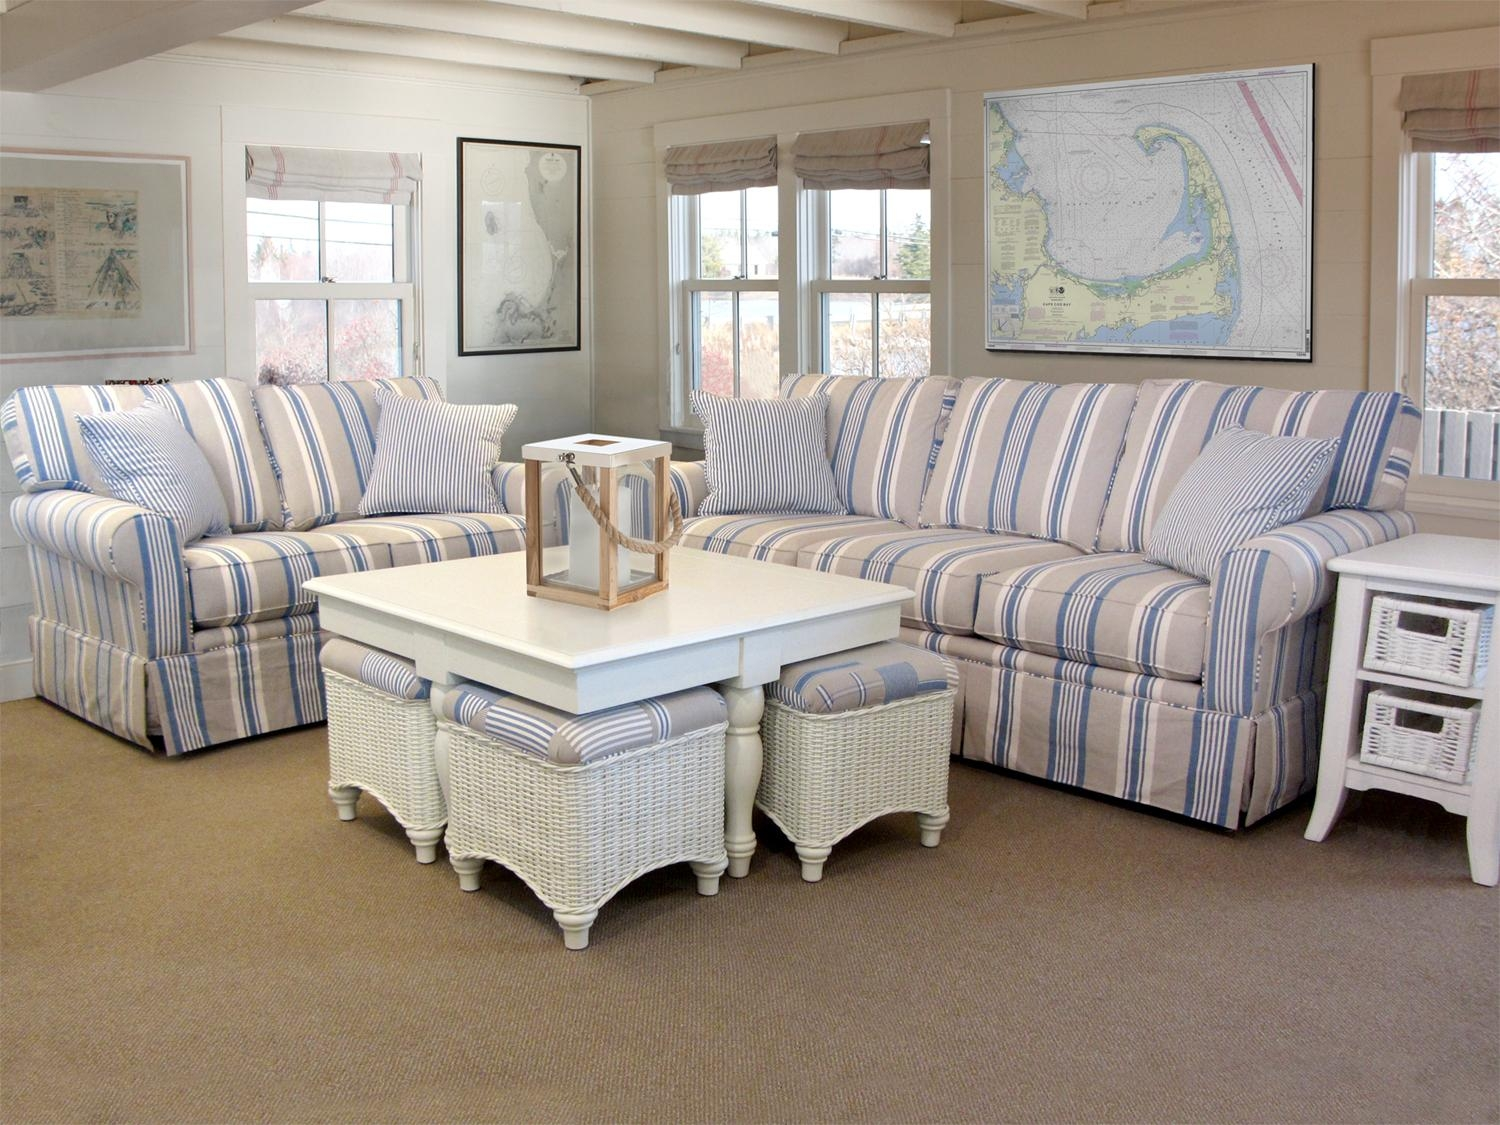 Awning Stripe Sofa | Barbos Furniture For Striped Sofas And Chairs (View 9 of 20)